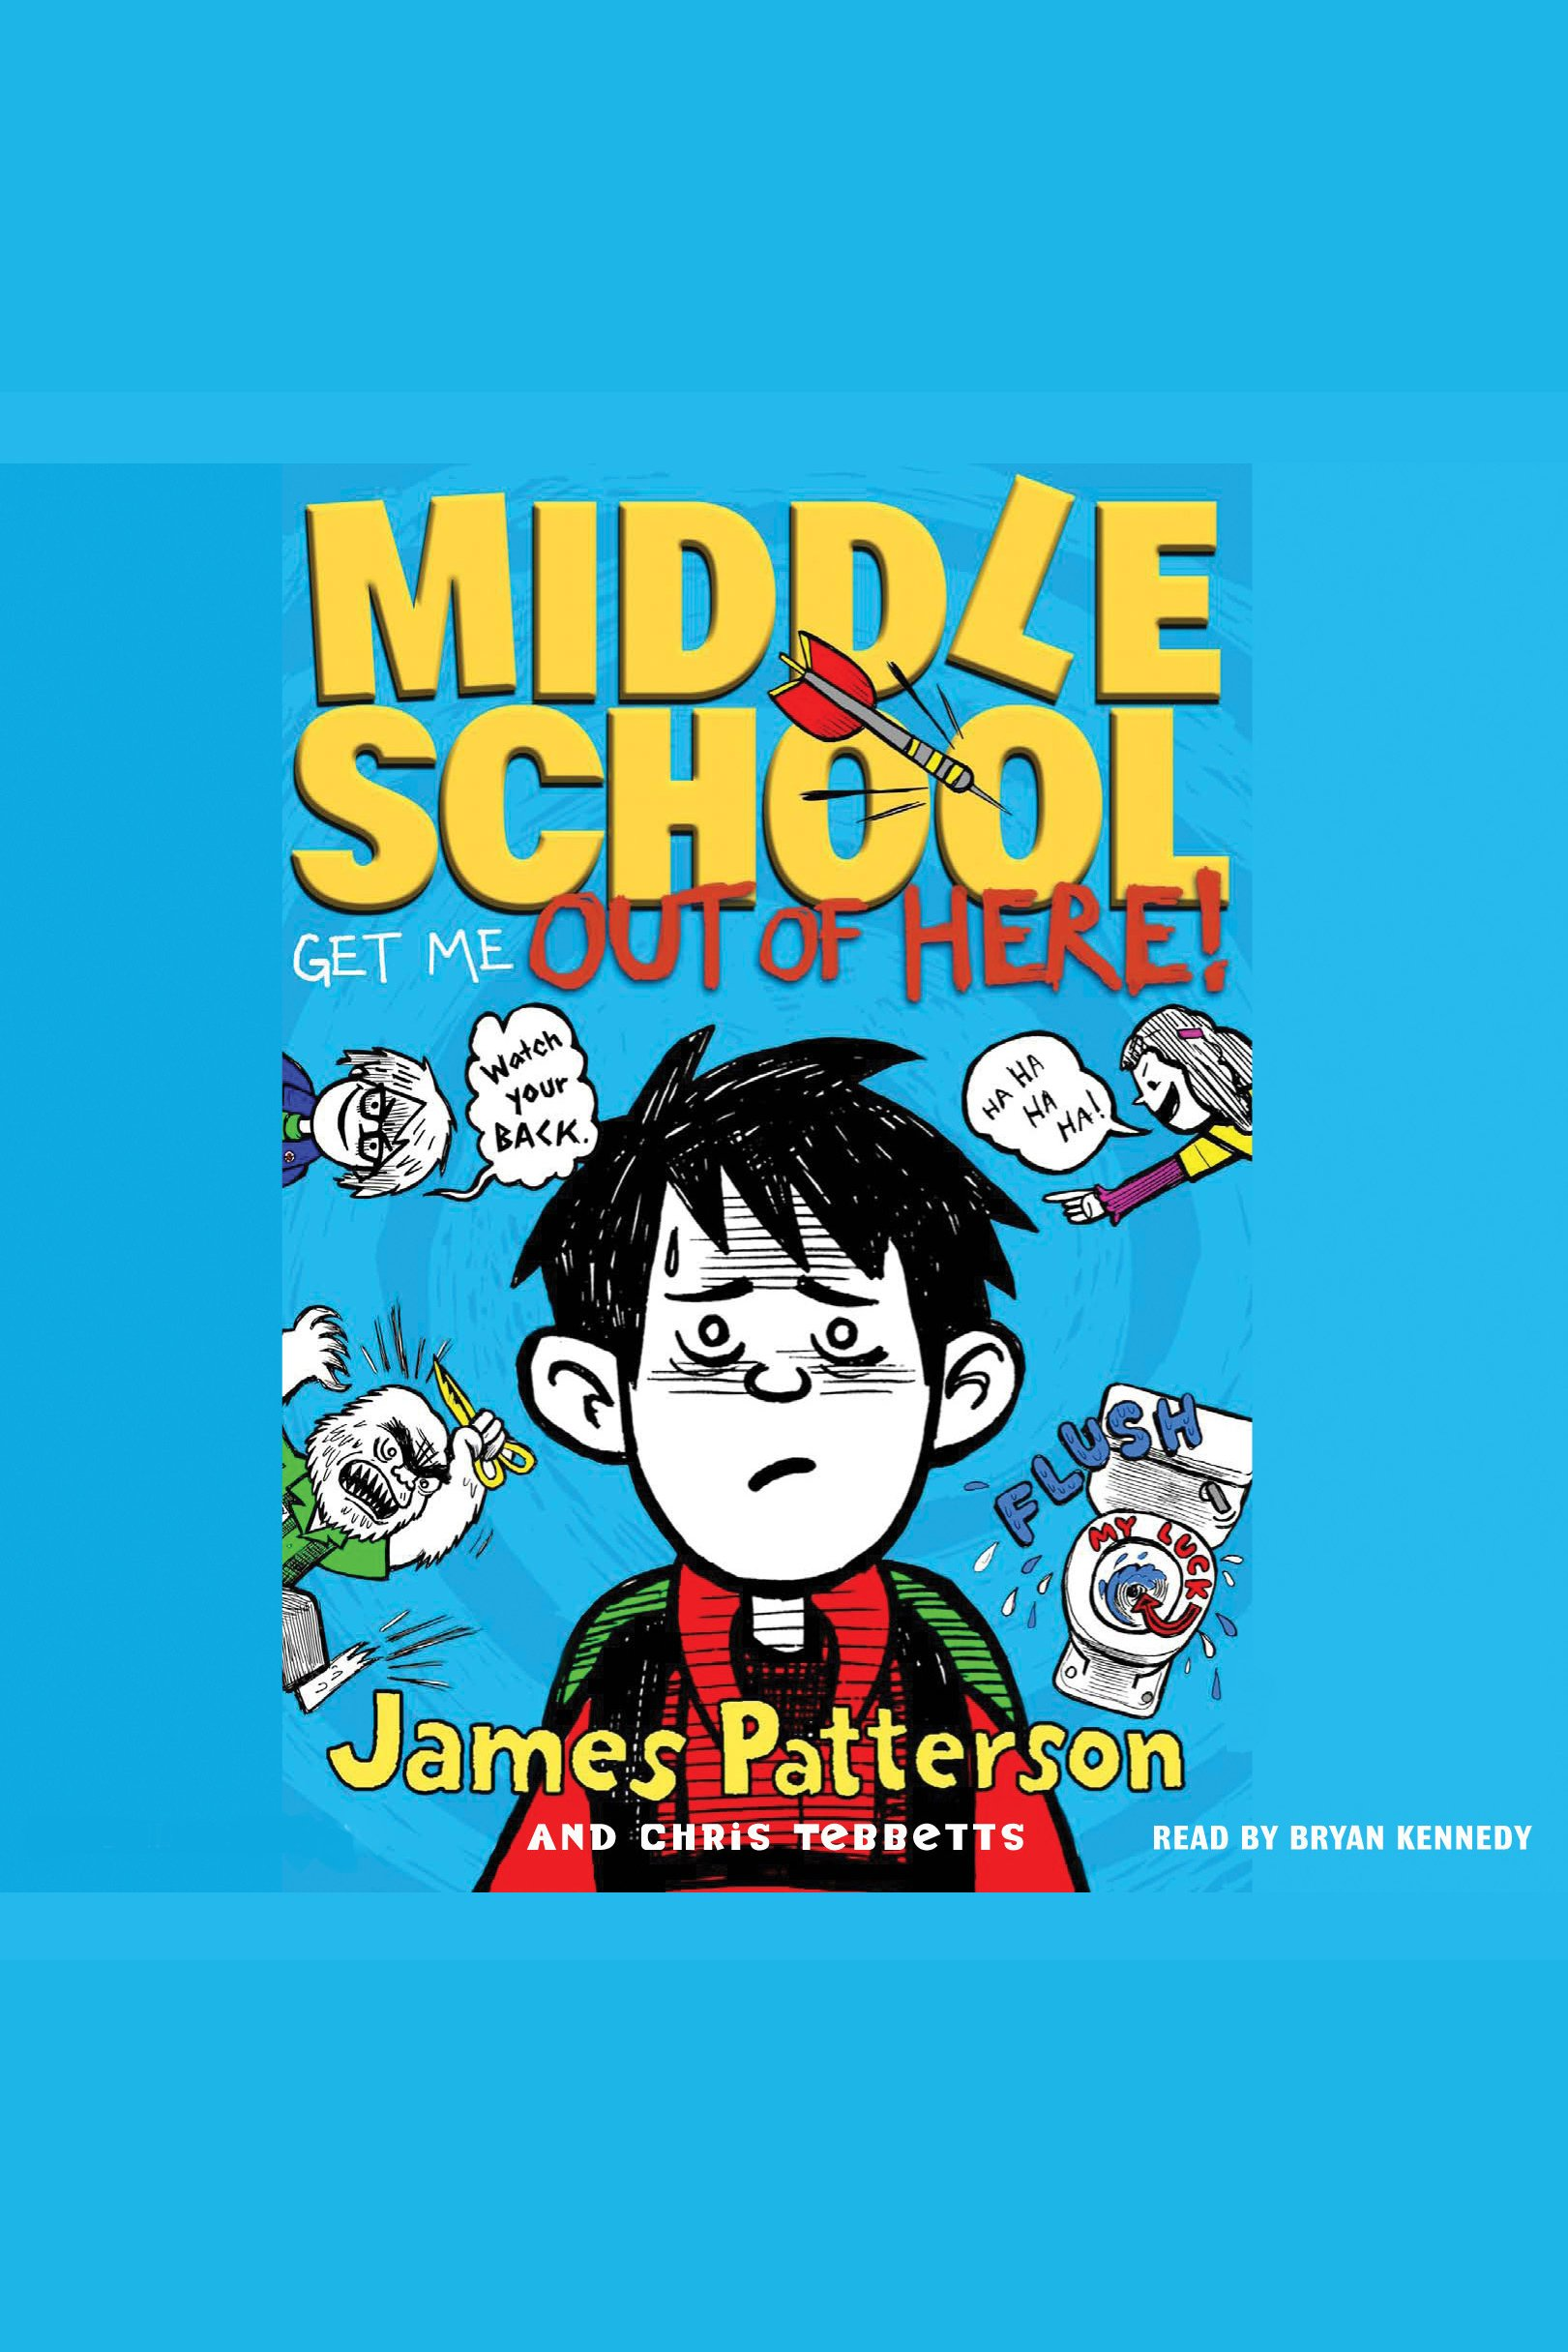 Middle school get me out of here! cover image